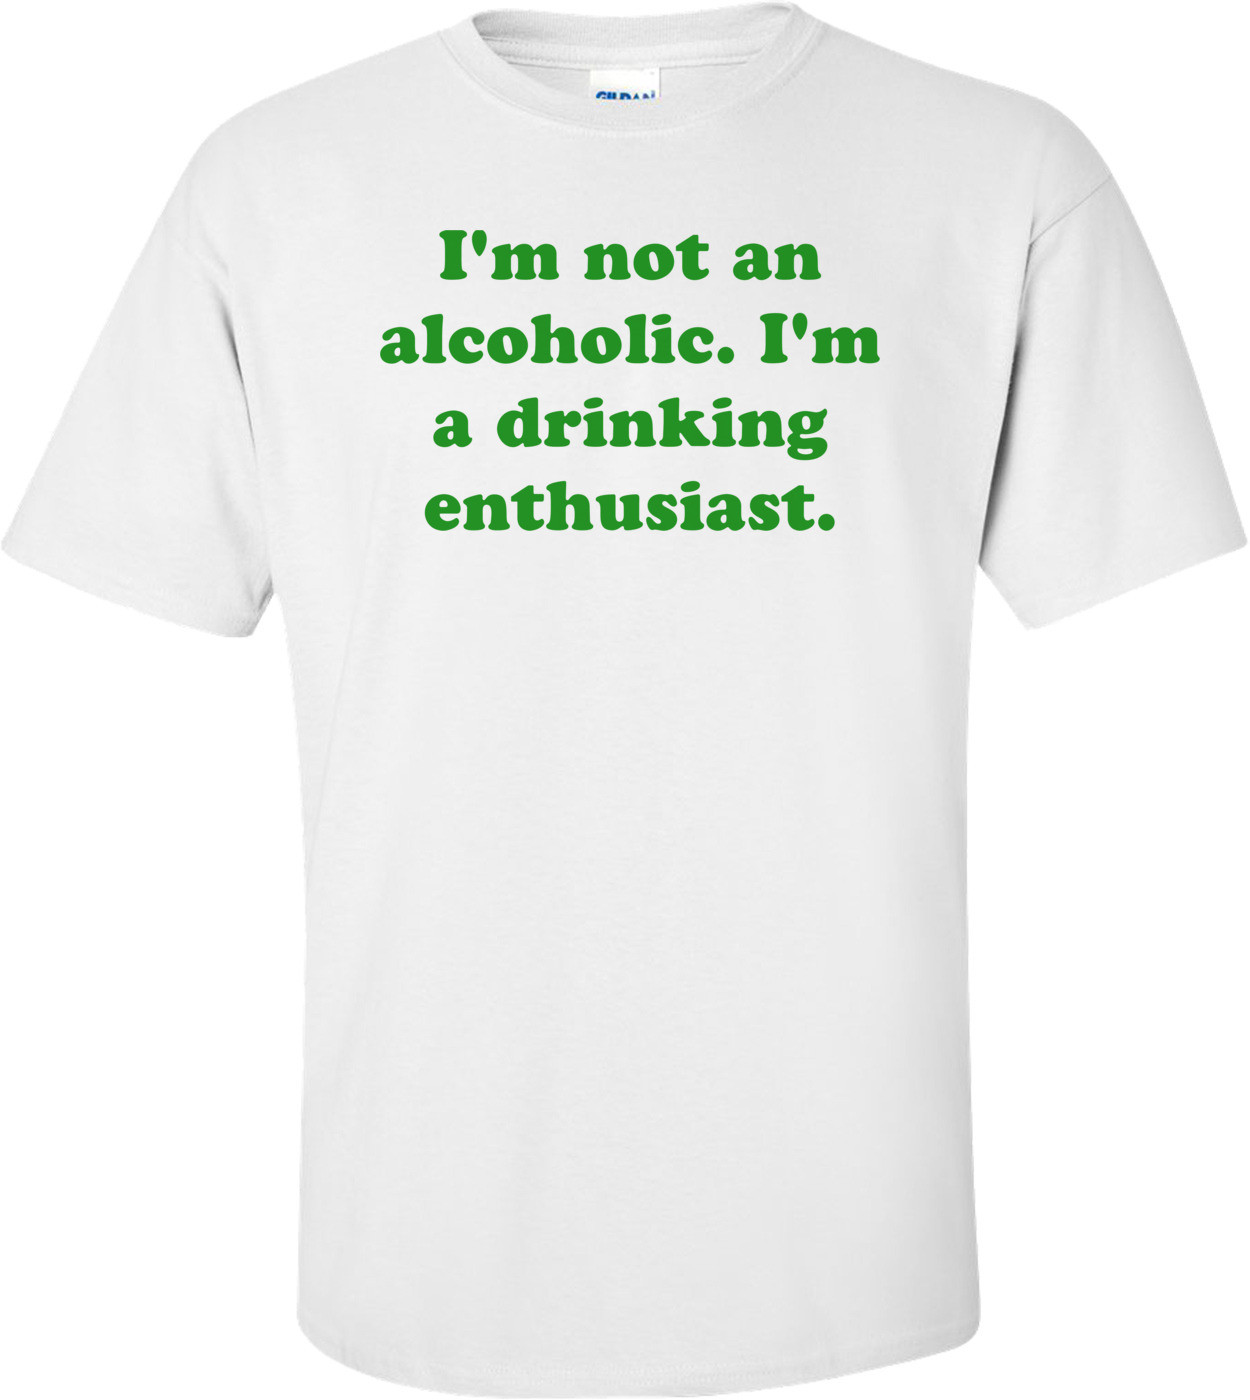 I'm not an alcoholic. I'm a drinking enthusiast. Shirt